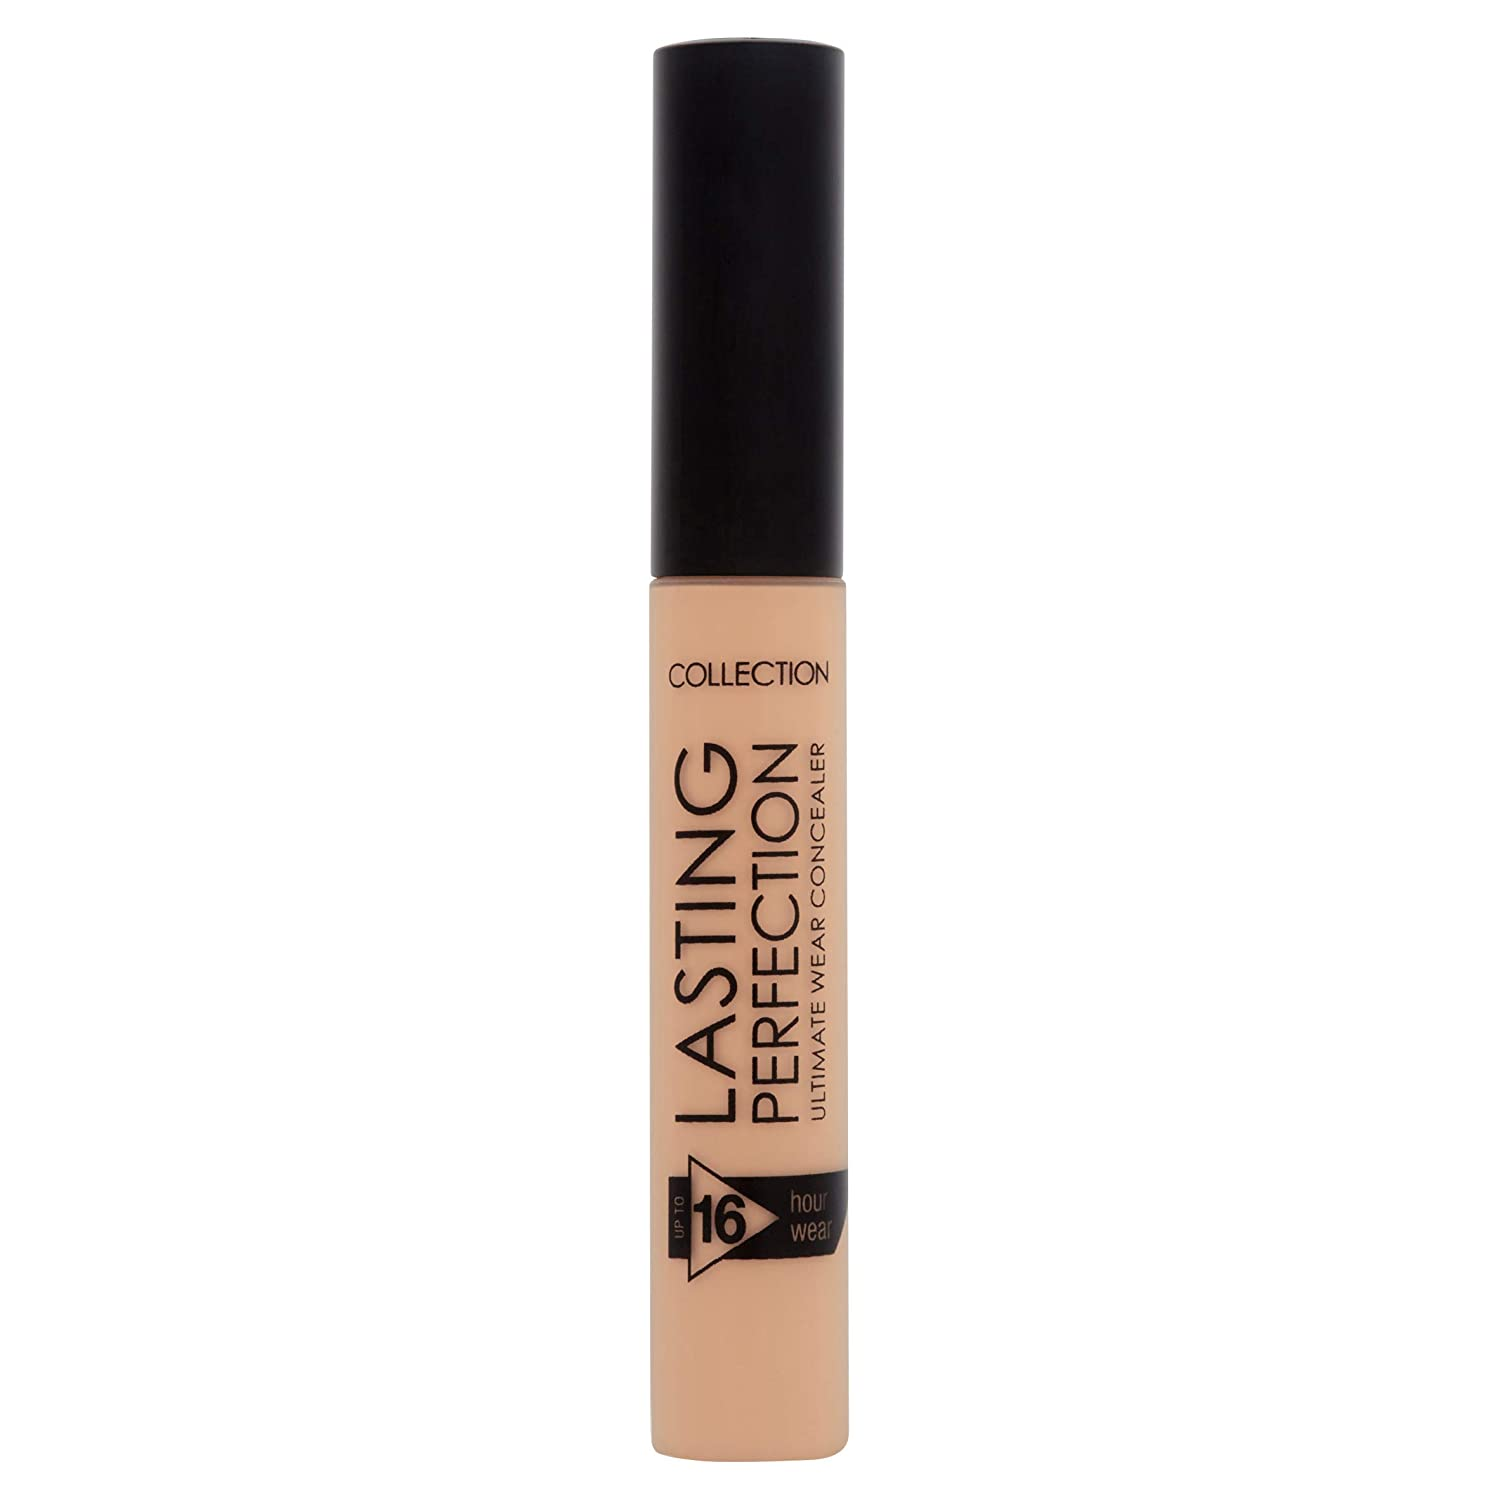 COLLECTION Lasting Perfection Ultimate Wear Concealer, Cool Medium LF BEAUTY UK 100526